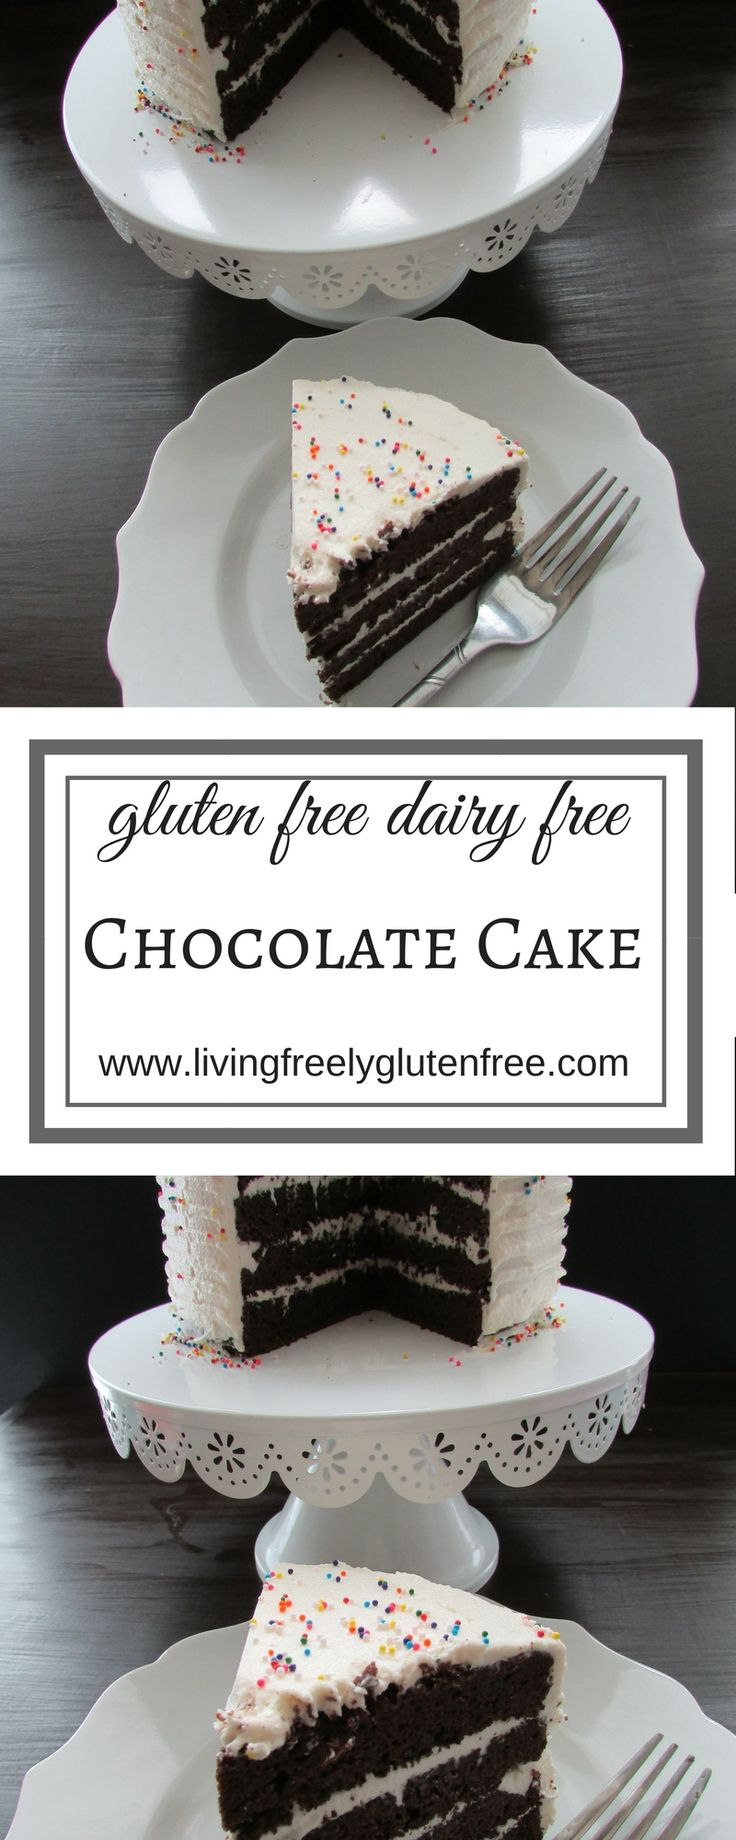 This delicious Chocolate Cake is gluten free, dairy free and made with easy to find ingredients that you likely have on hand right now. #glutenfree #birthdaycake #glutenfreerecipes #dairyfree #dessert #glutenfreecake www.livingfreelyglutenfree.com Gluten free birthday cake. Dairy free birthday cake. Gluten and dairy free birthday cake. Gluten free chocolate cake. Dairy free chocolate cake. Gluten and dairy free chocolate cake.